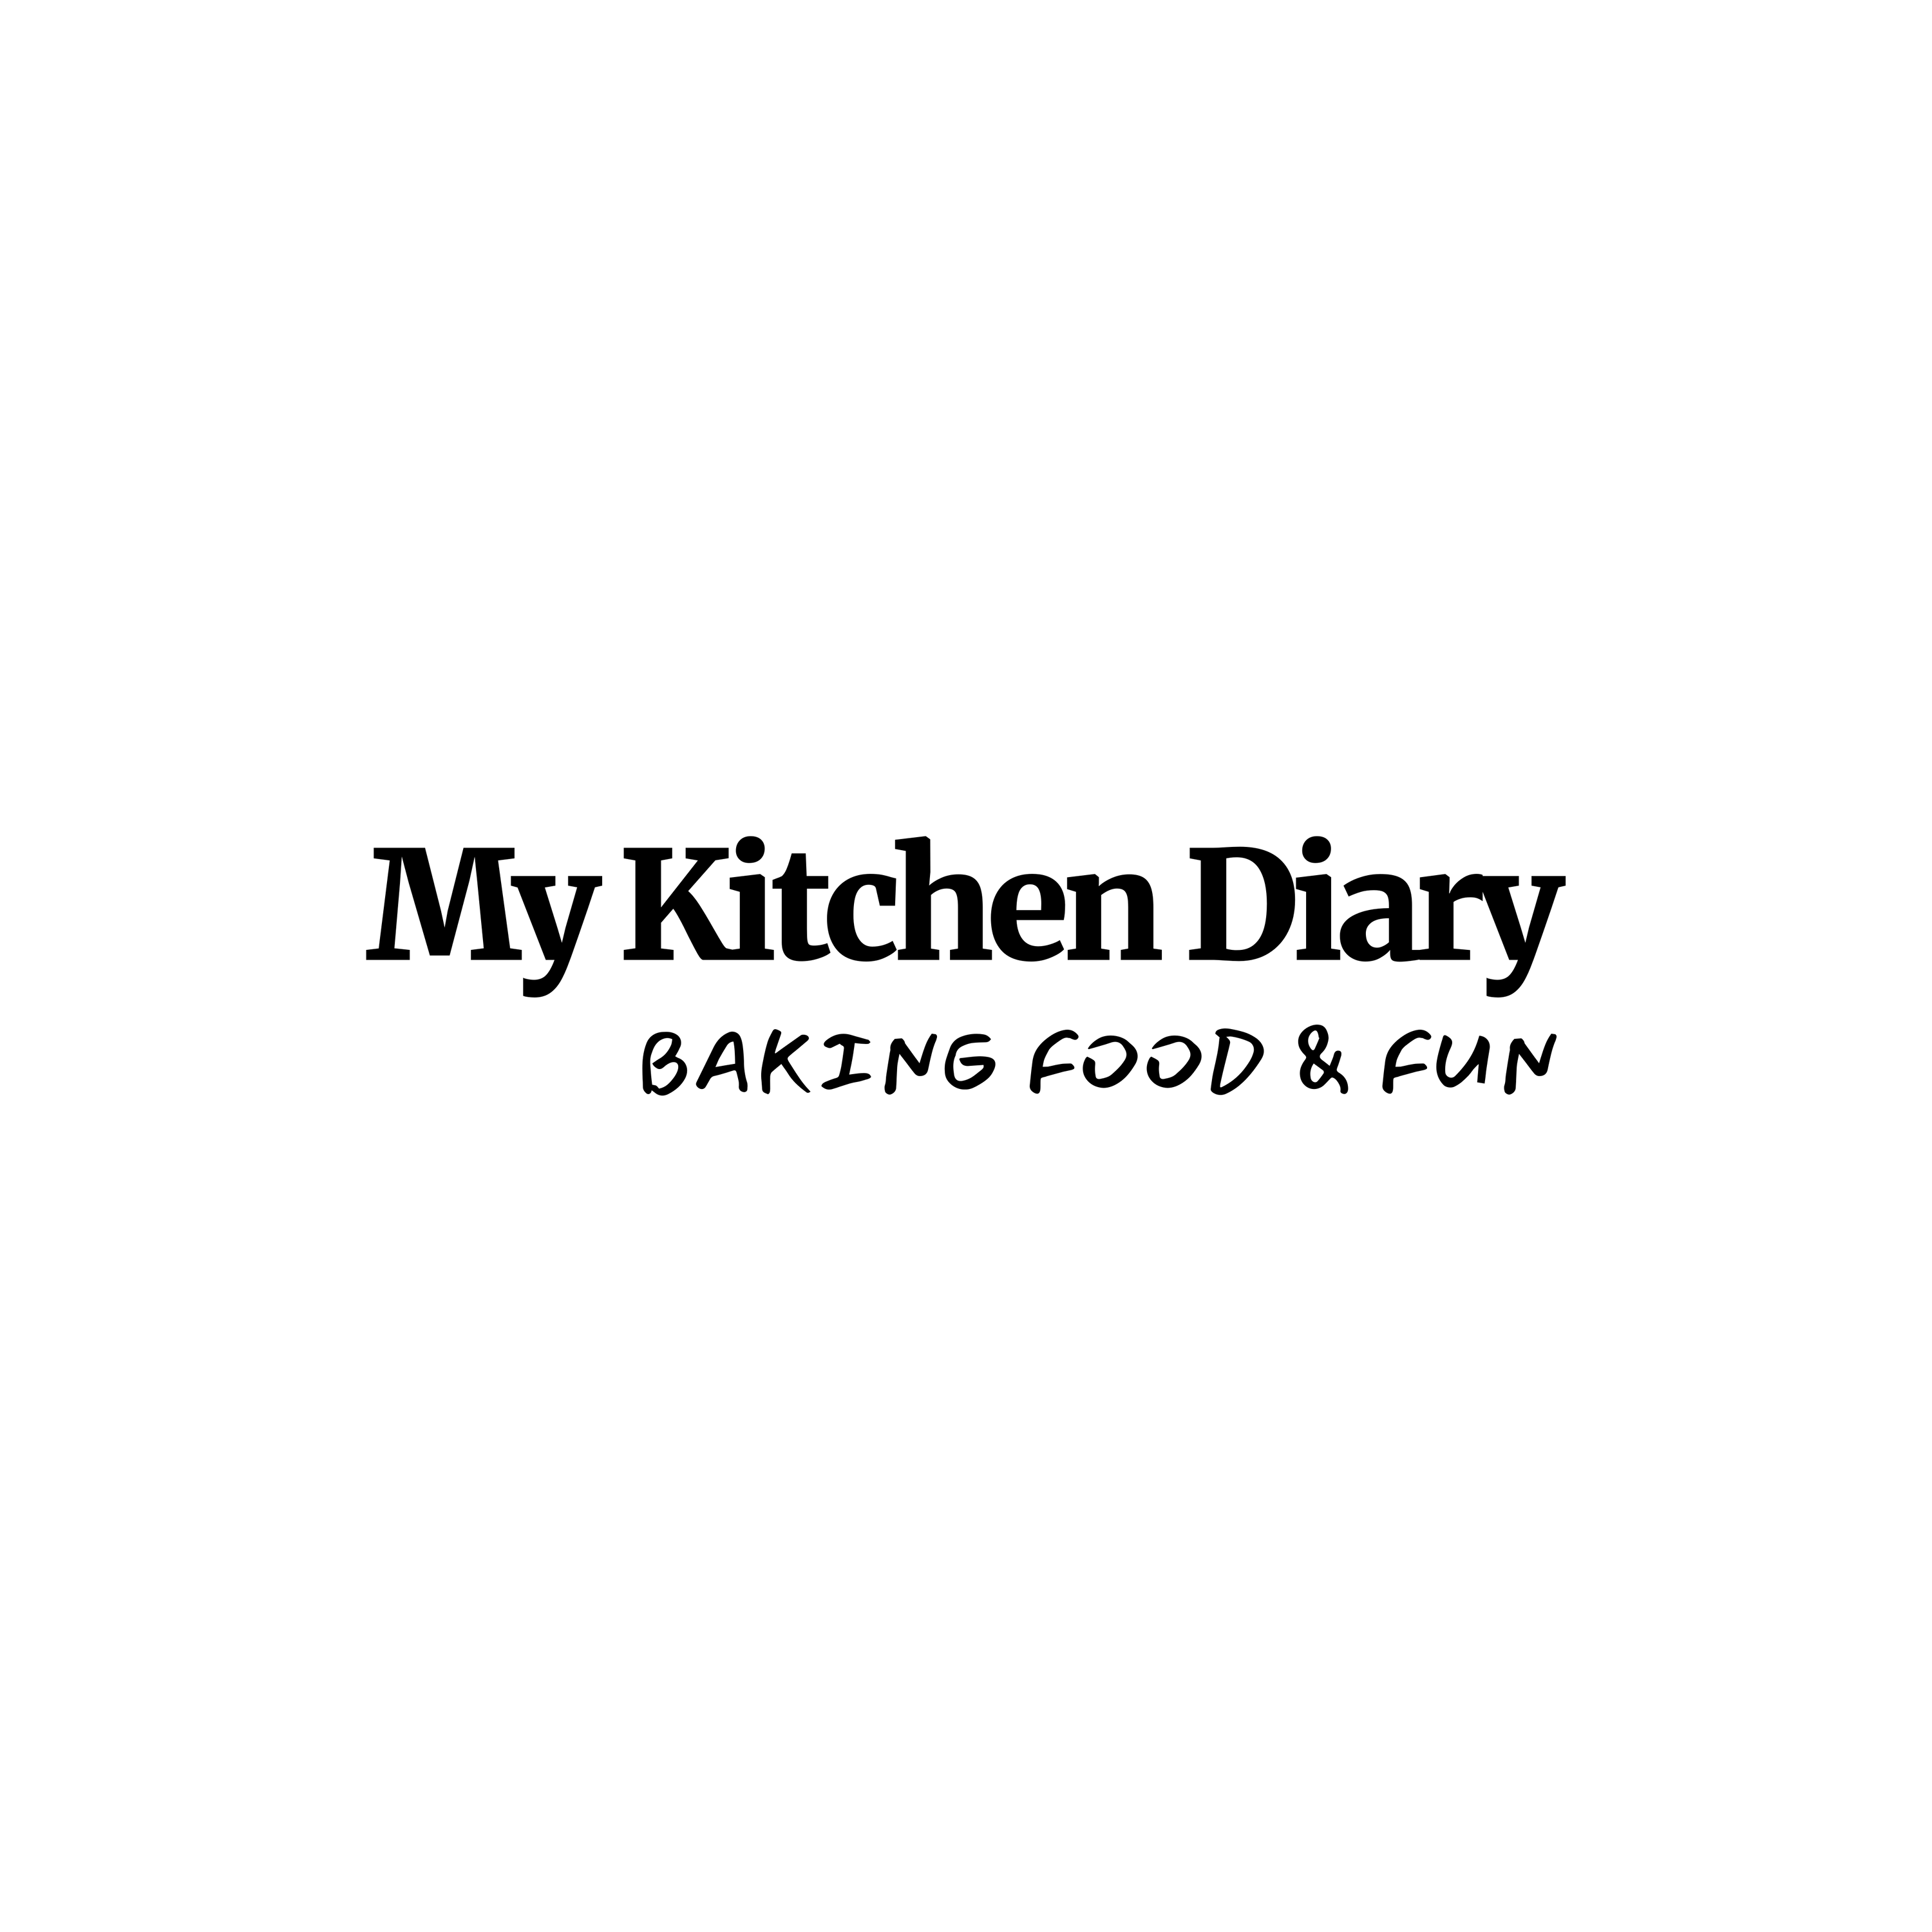 My Kitchen Diary